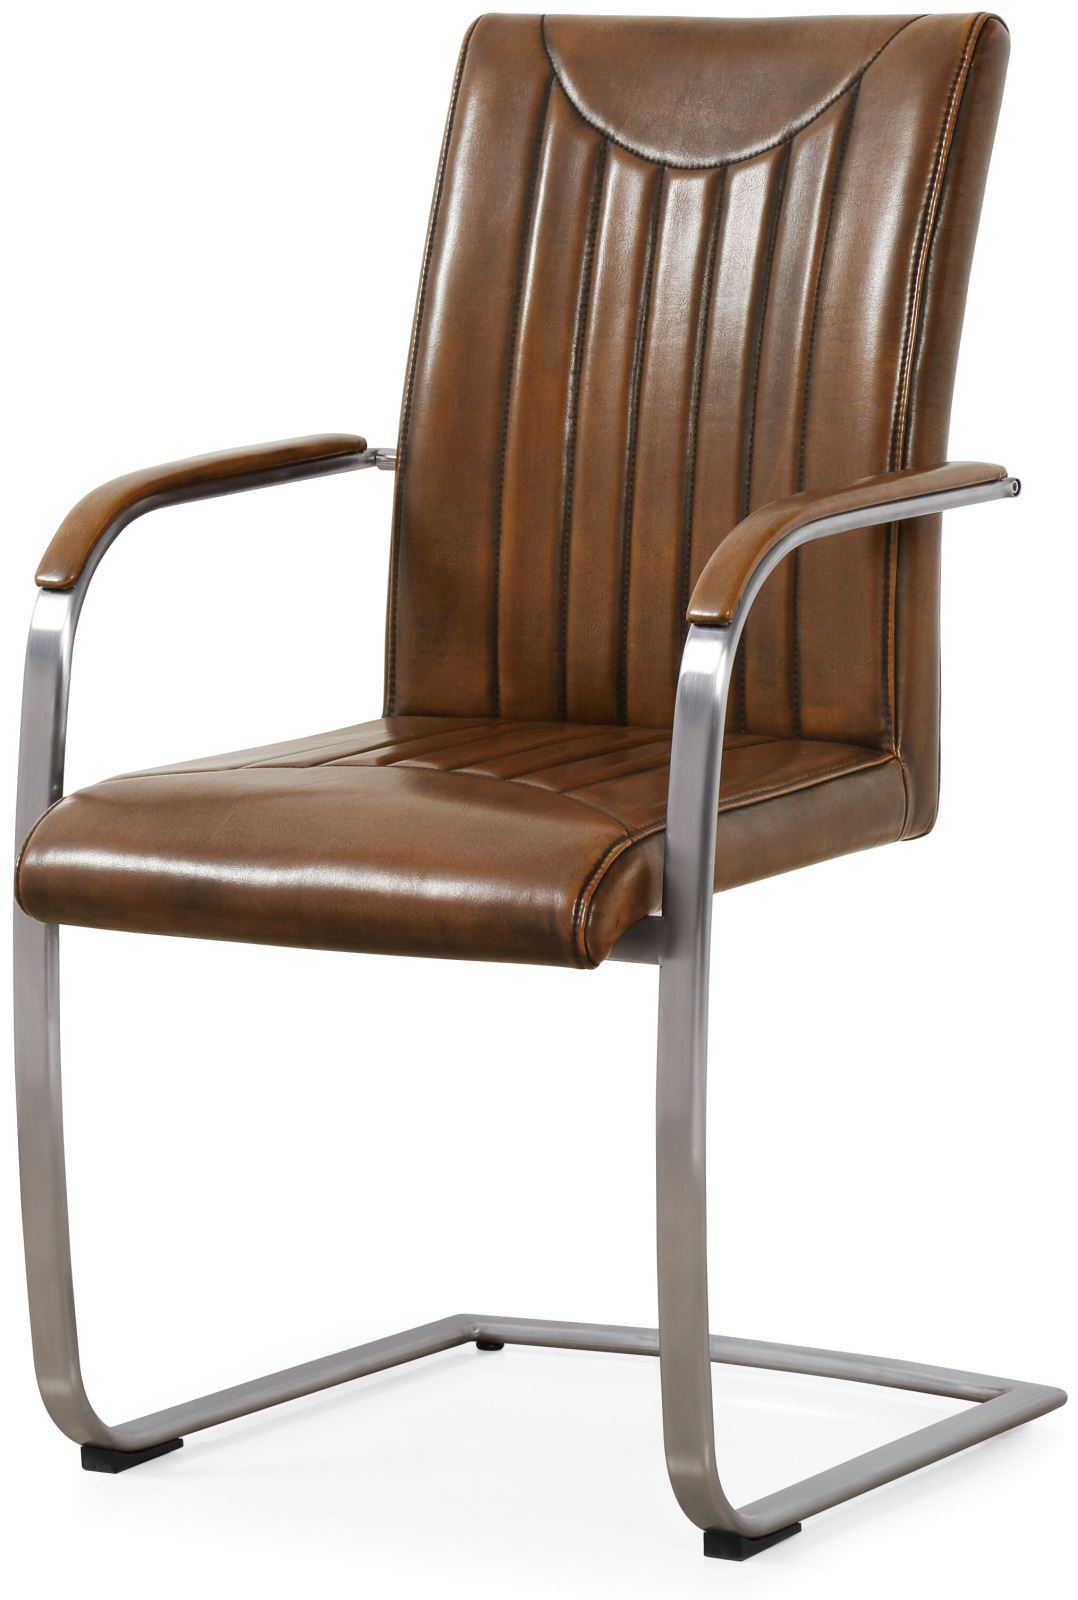 Classic Furniture Industrial Dining Chair Retro Curve